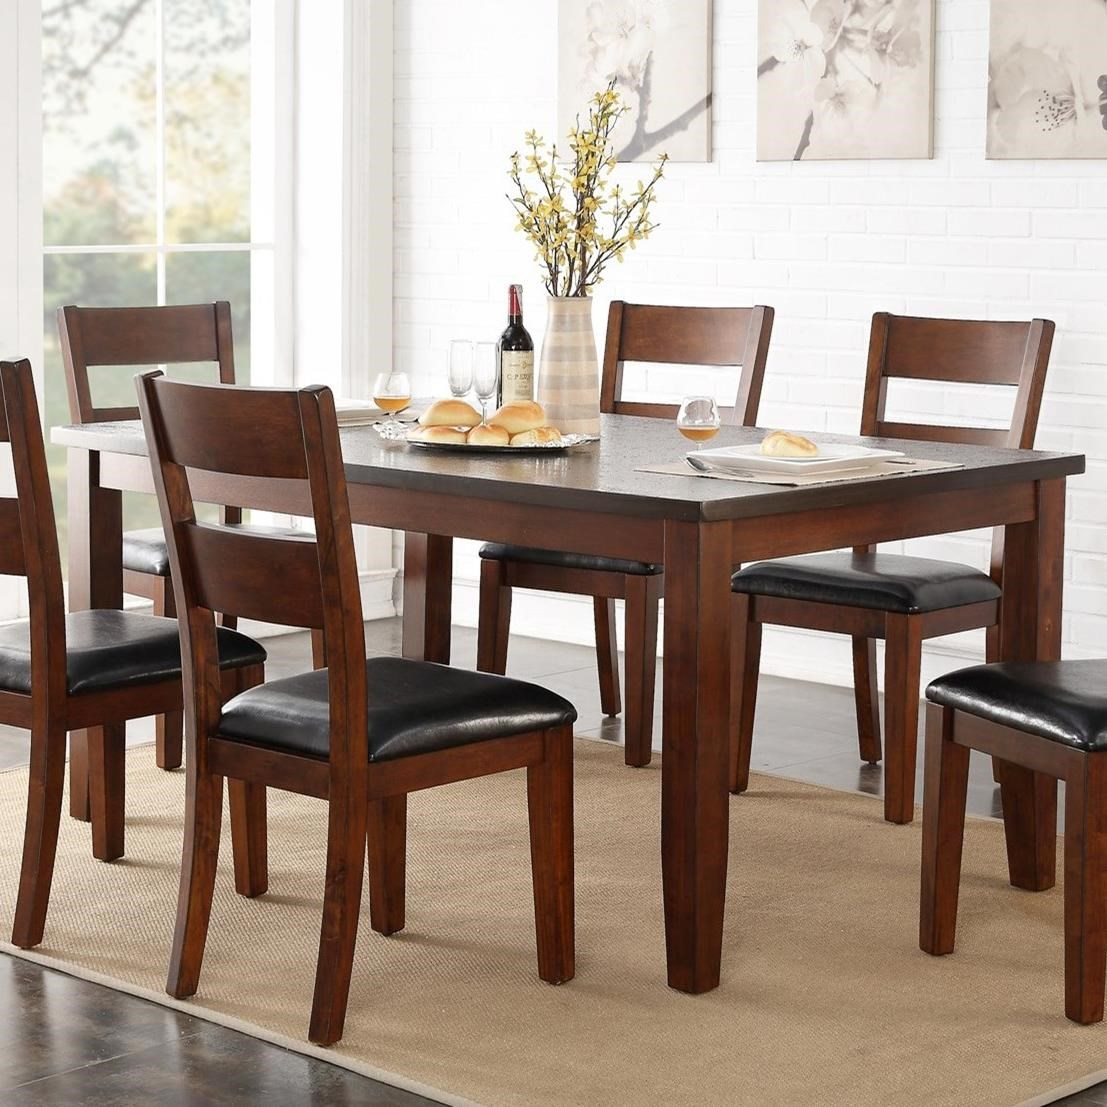 Legends furniture rockport zrpt 8060 72 dining table with for Best dining room table finish